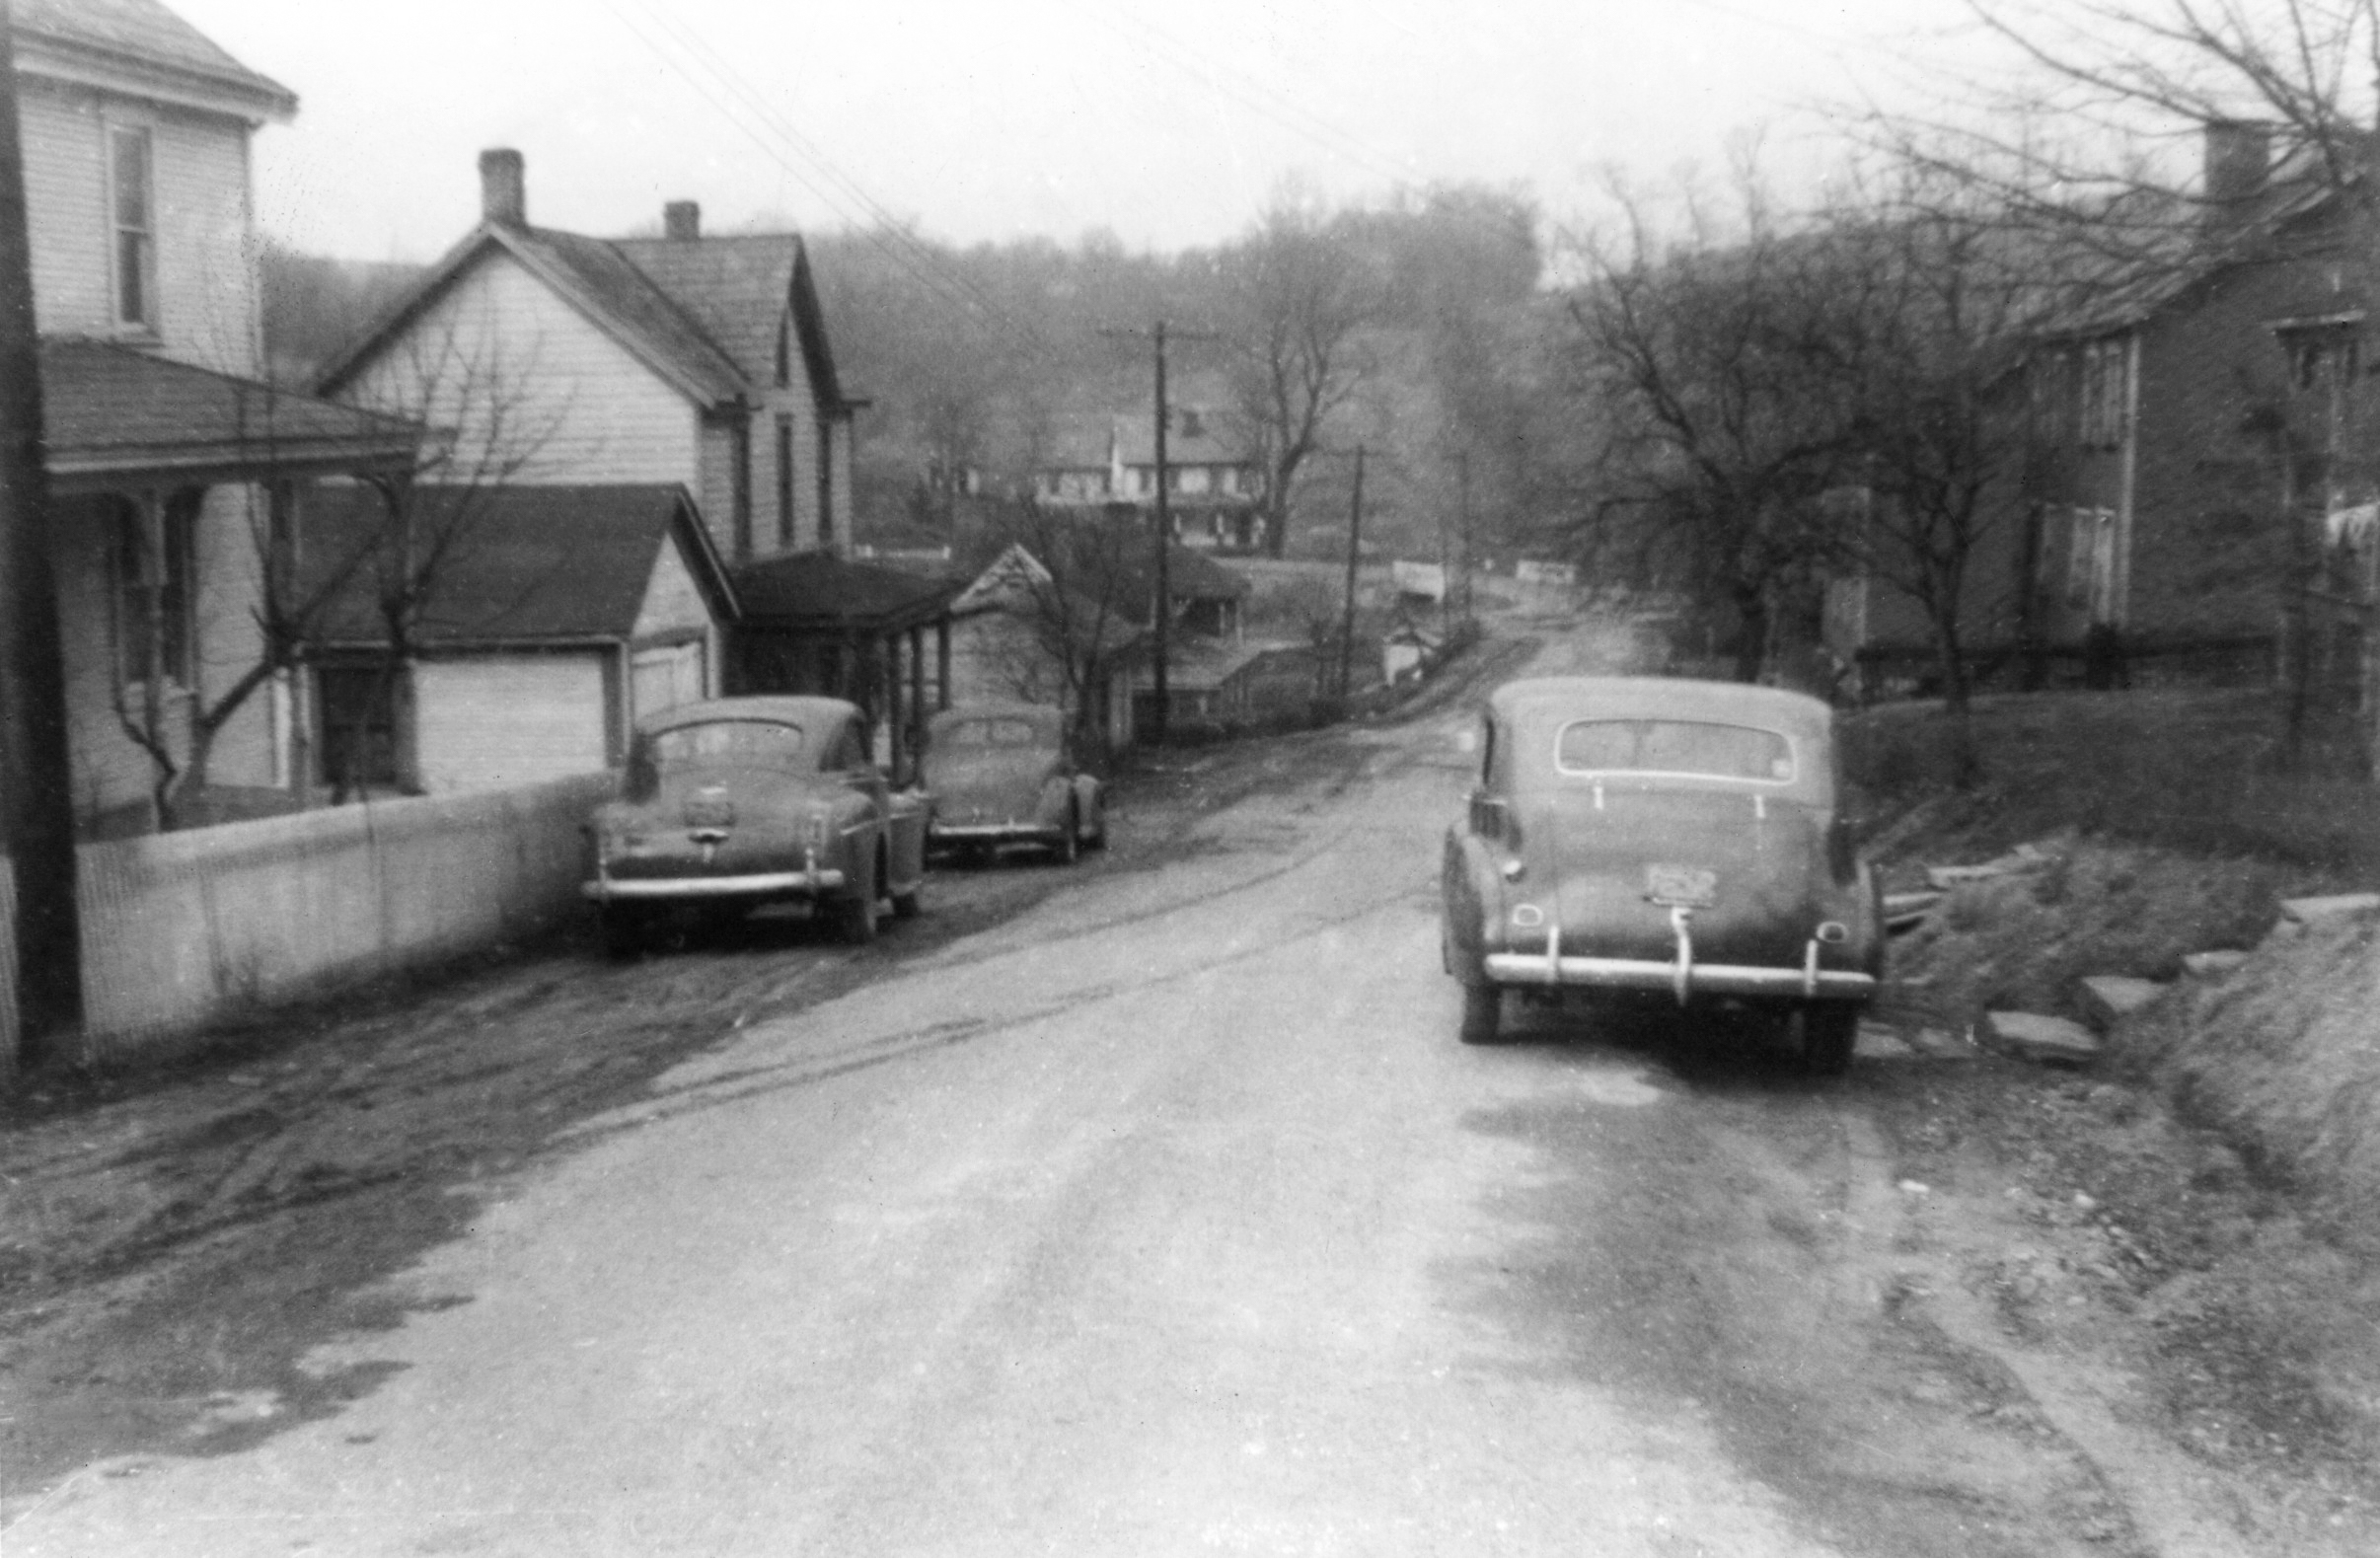 Claridge, PA in the 1930s